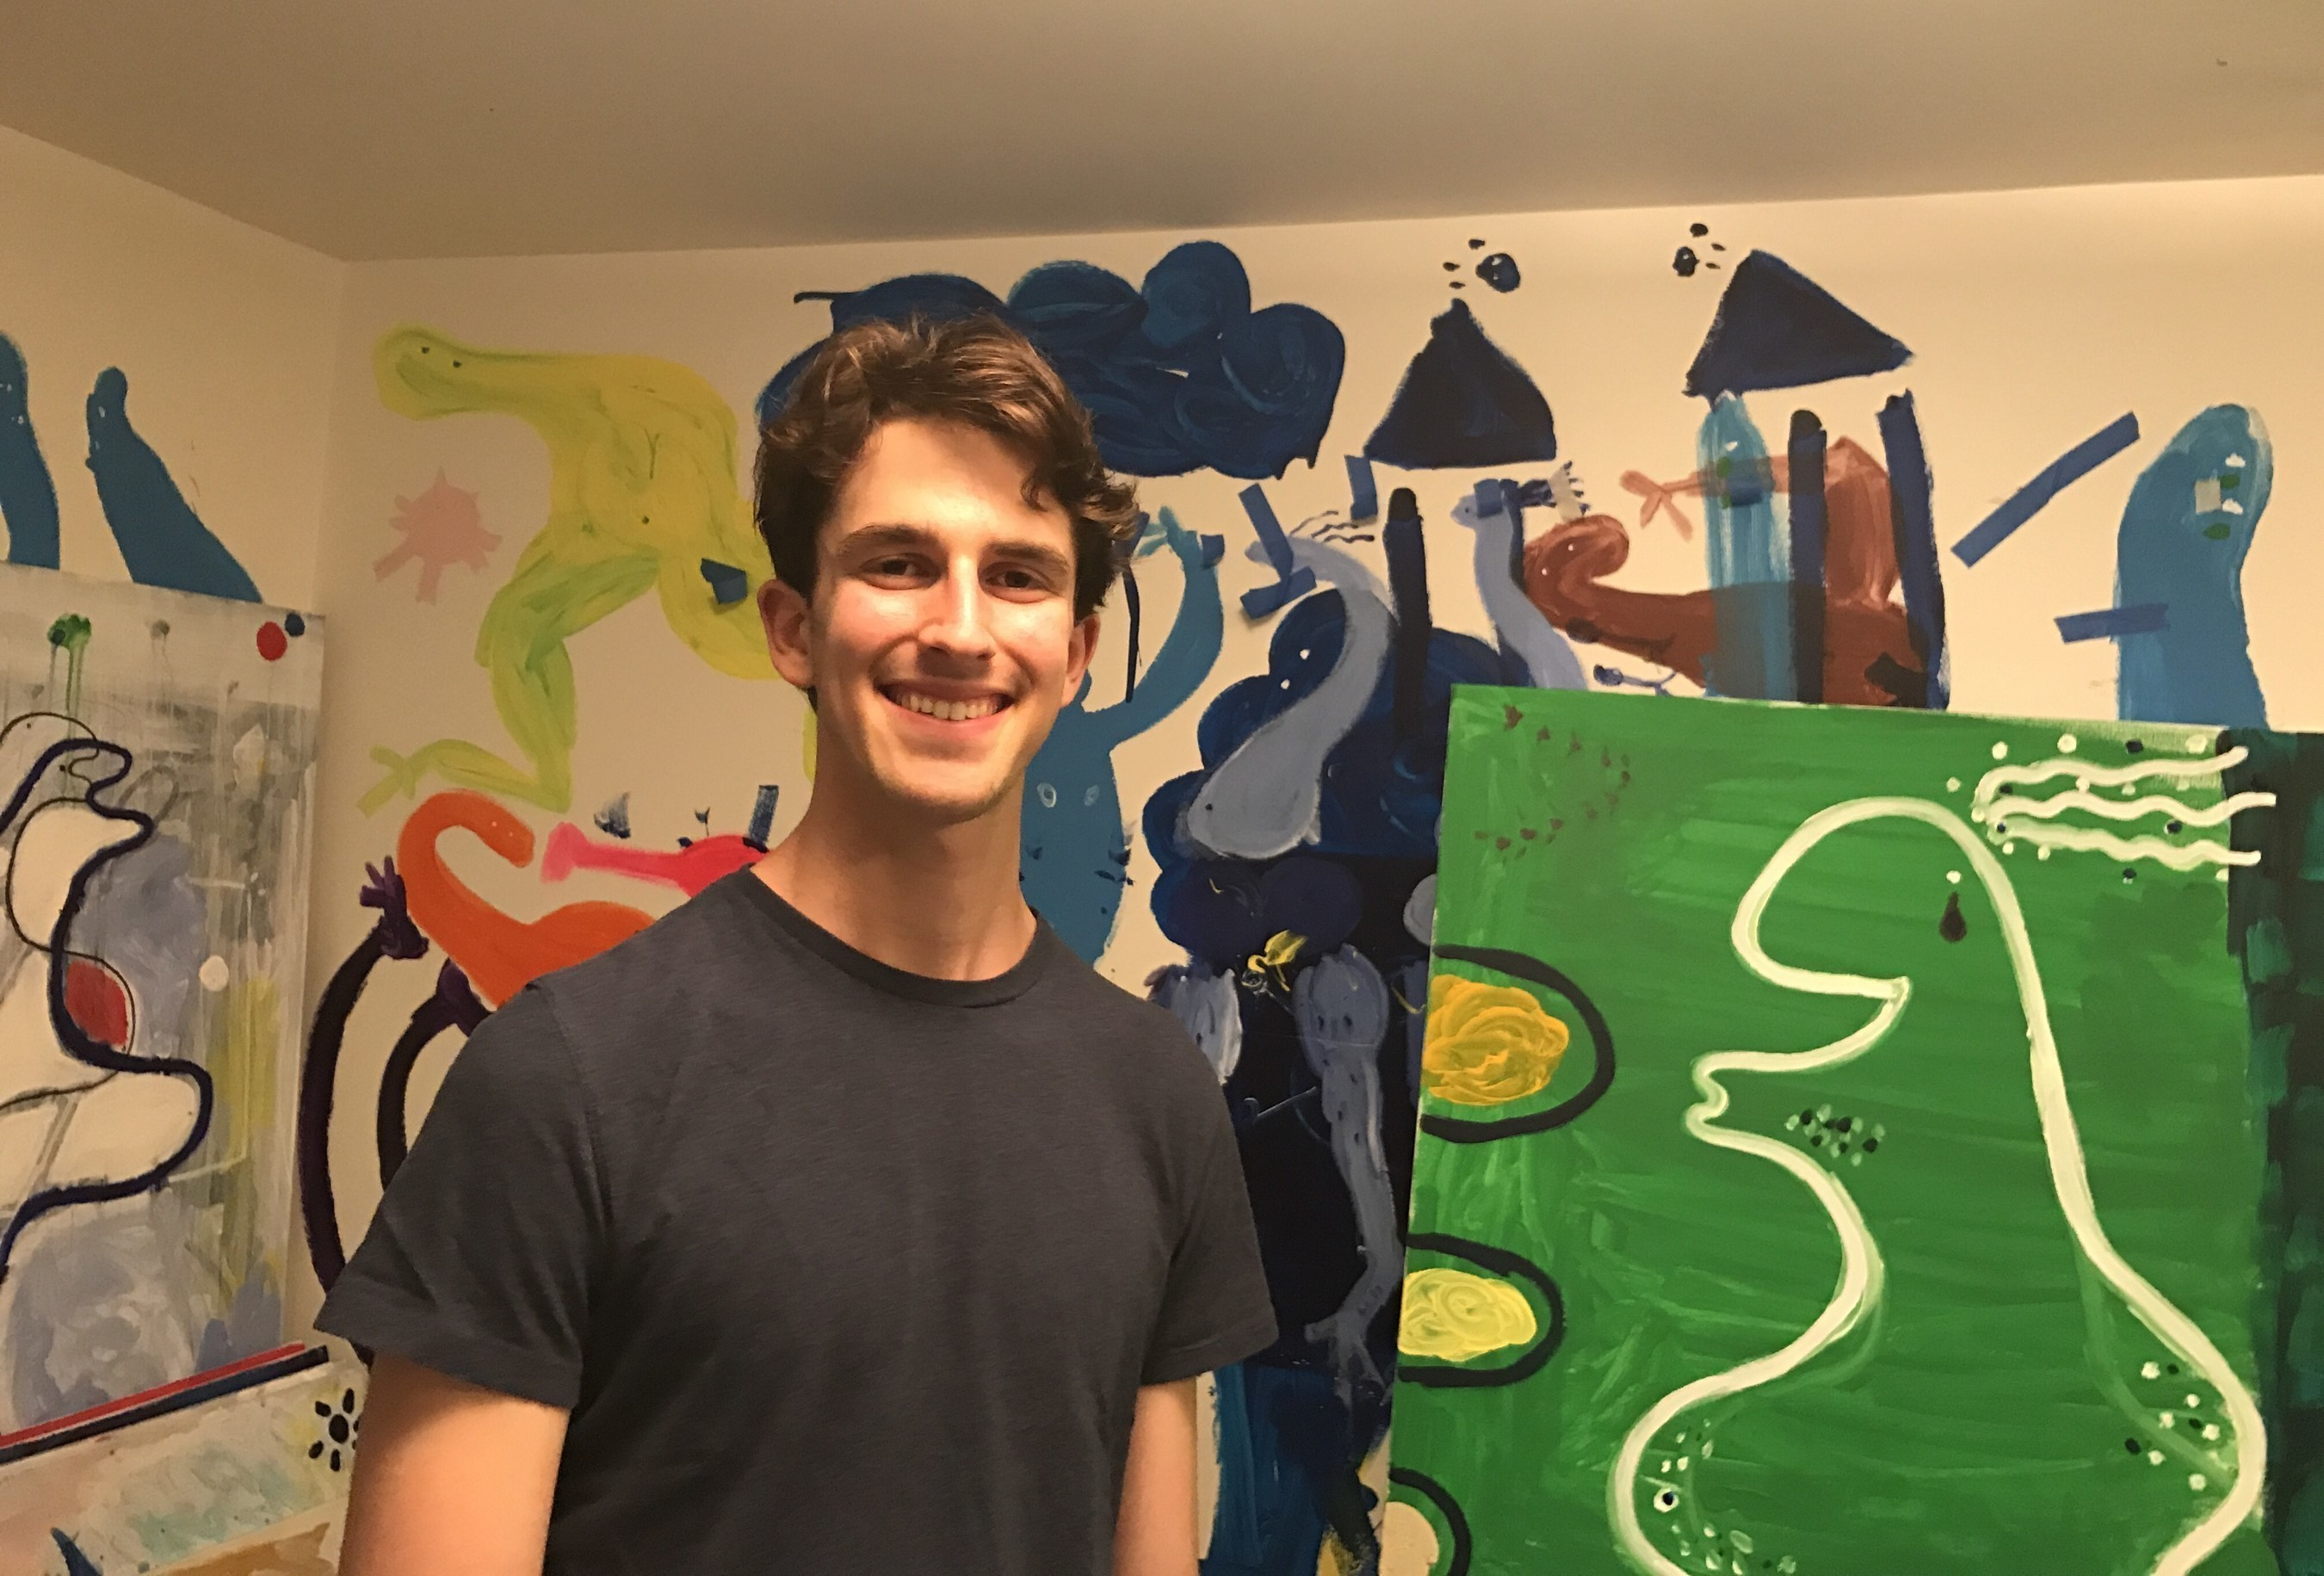 High school teen, Adam Jonah, spreads unity with his artistic talents despite hate crimes and bomb threats in the local community.